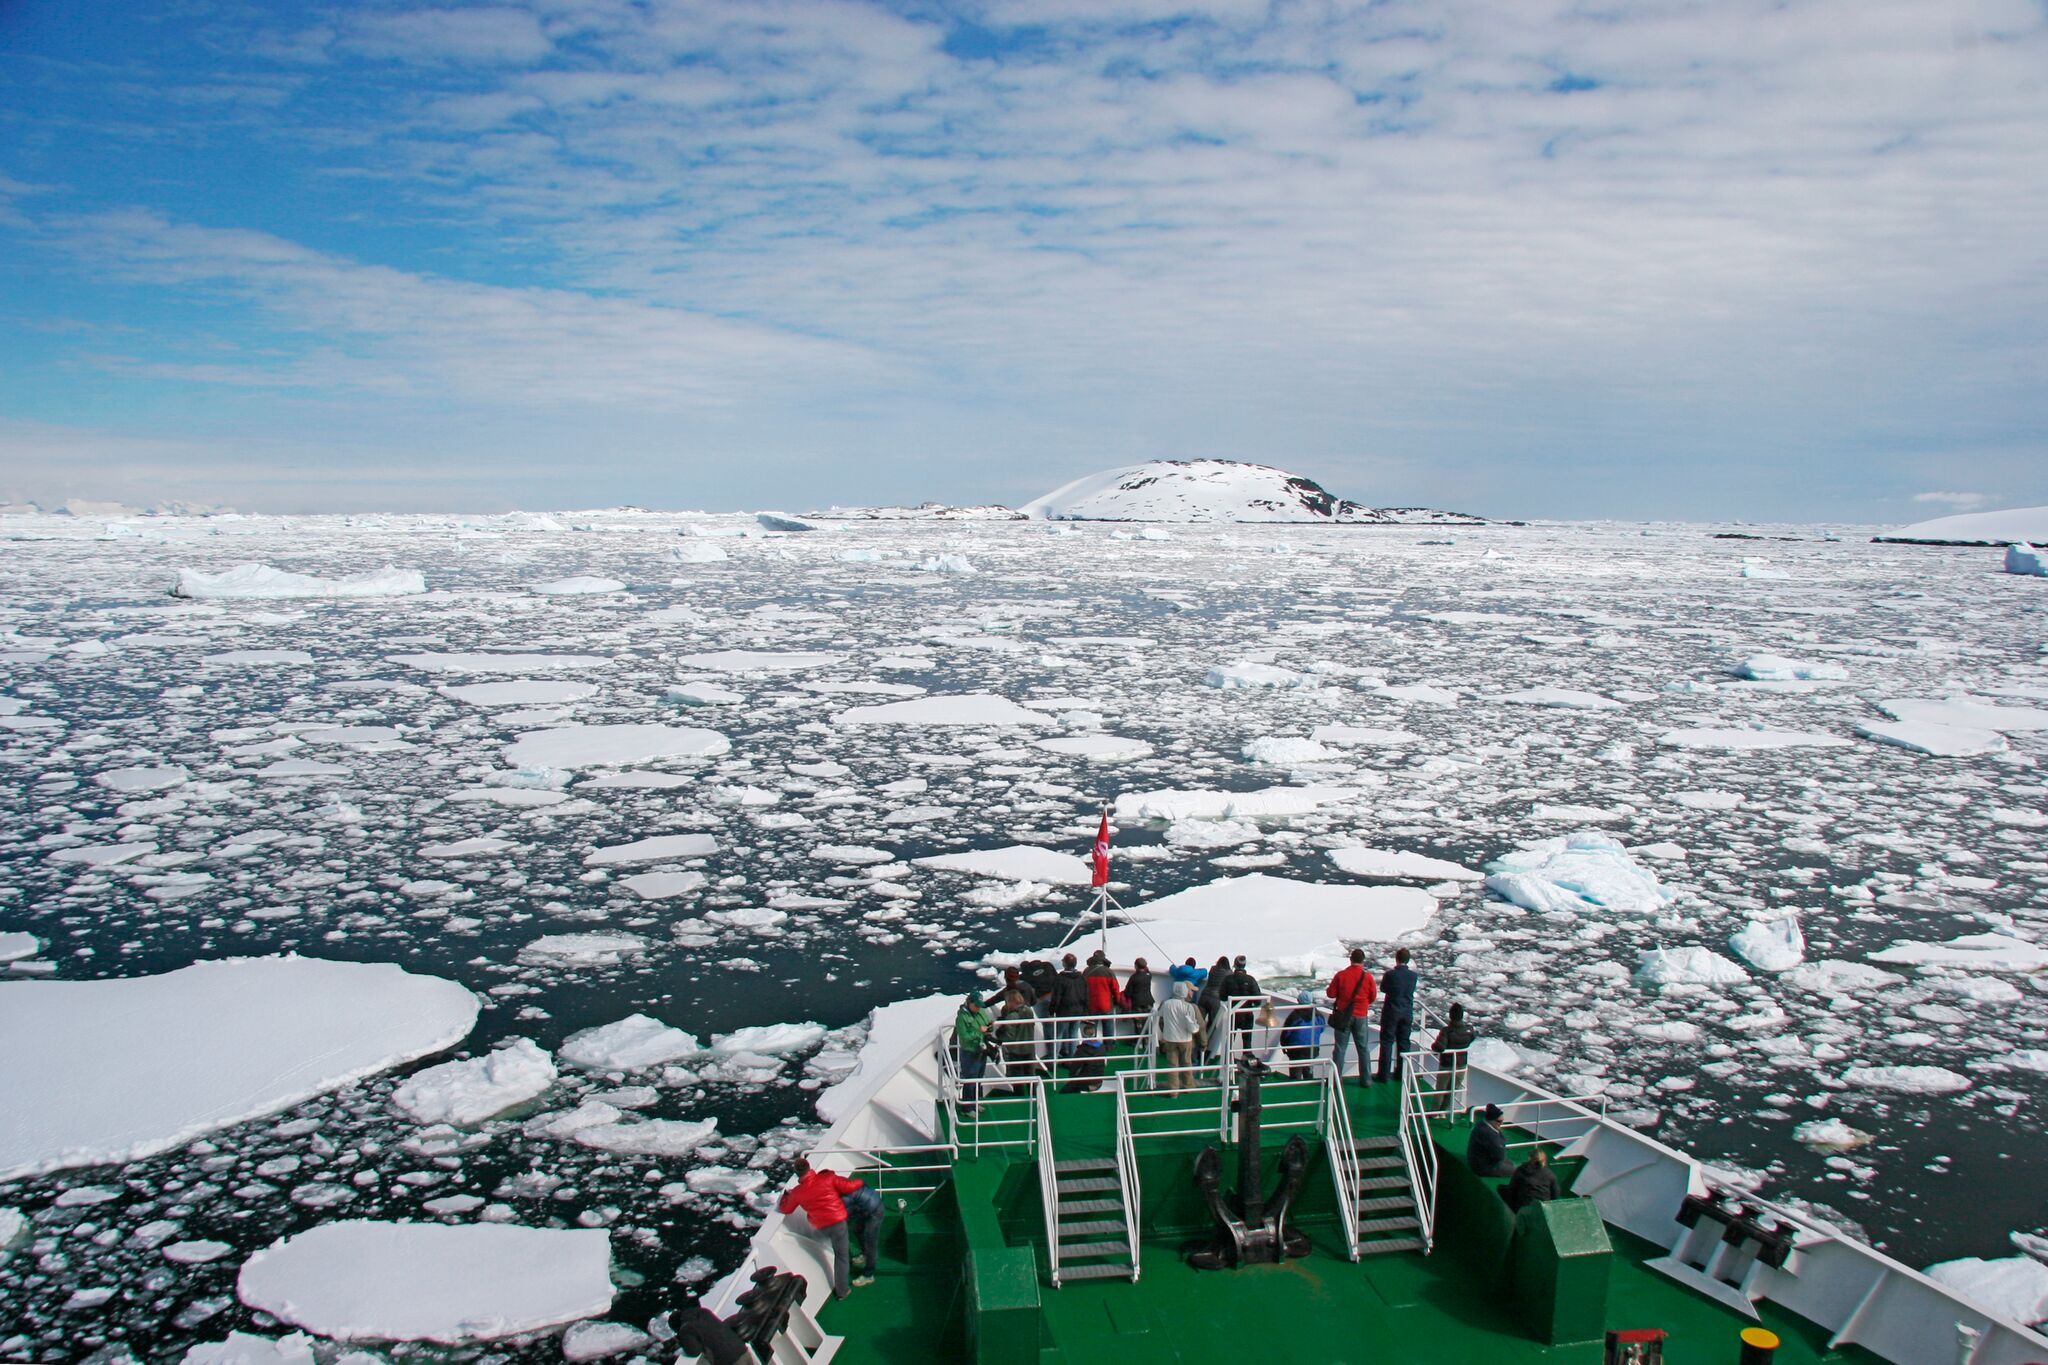 Wildlife spotting on board an Antarctic Expedition Cruise Ship